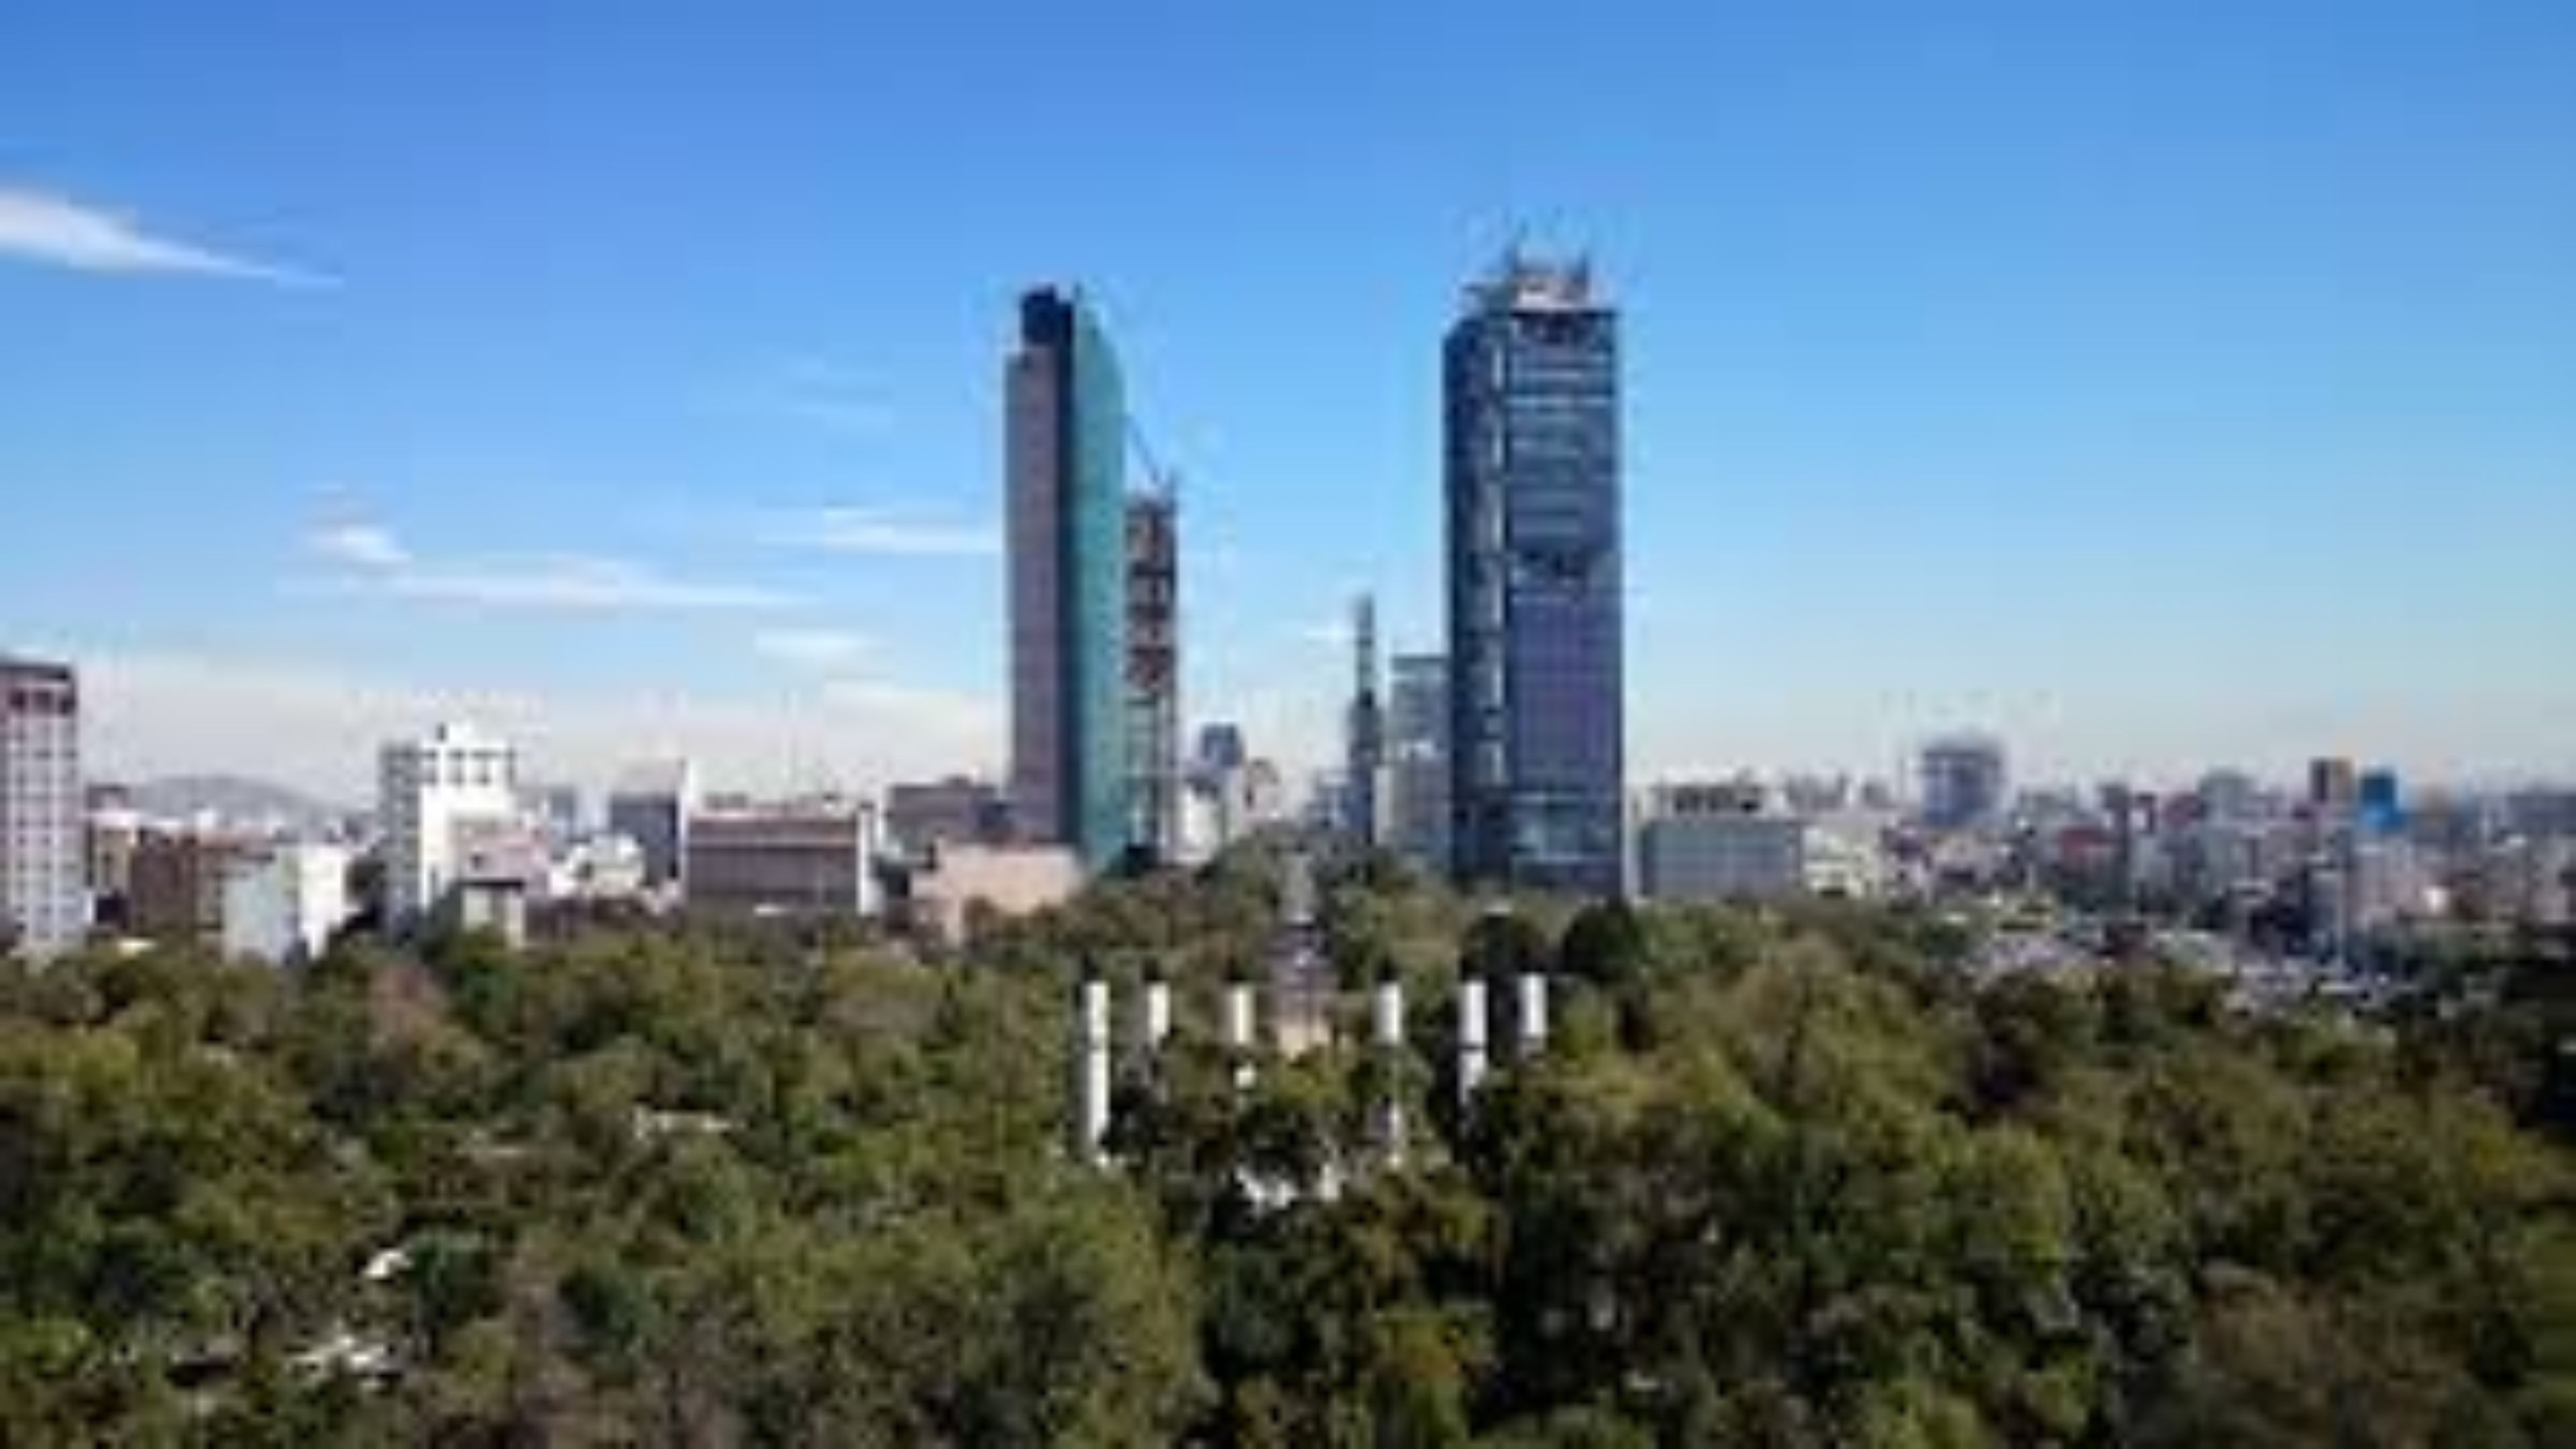 65 Beautiful Mexico City Wallpapers   Download at WallpaperBro 3840x2160